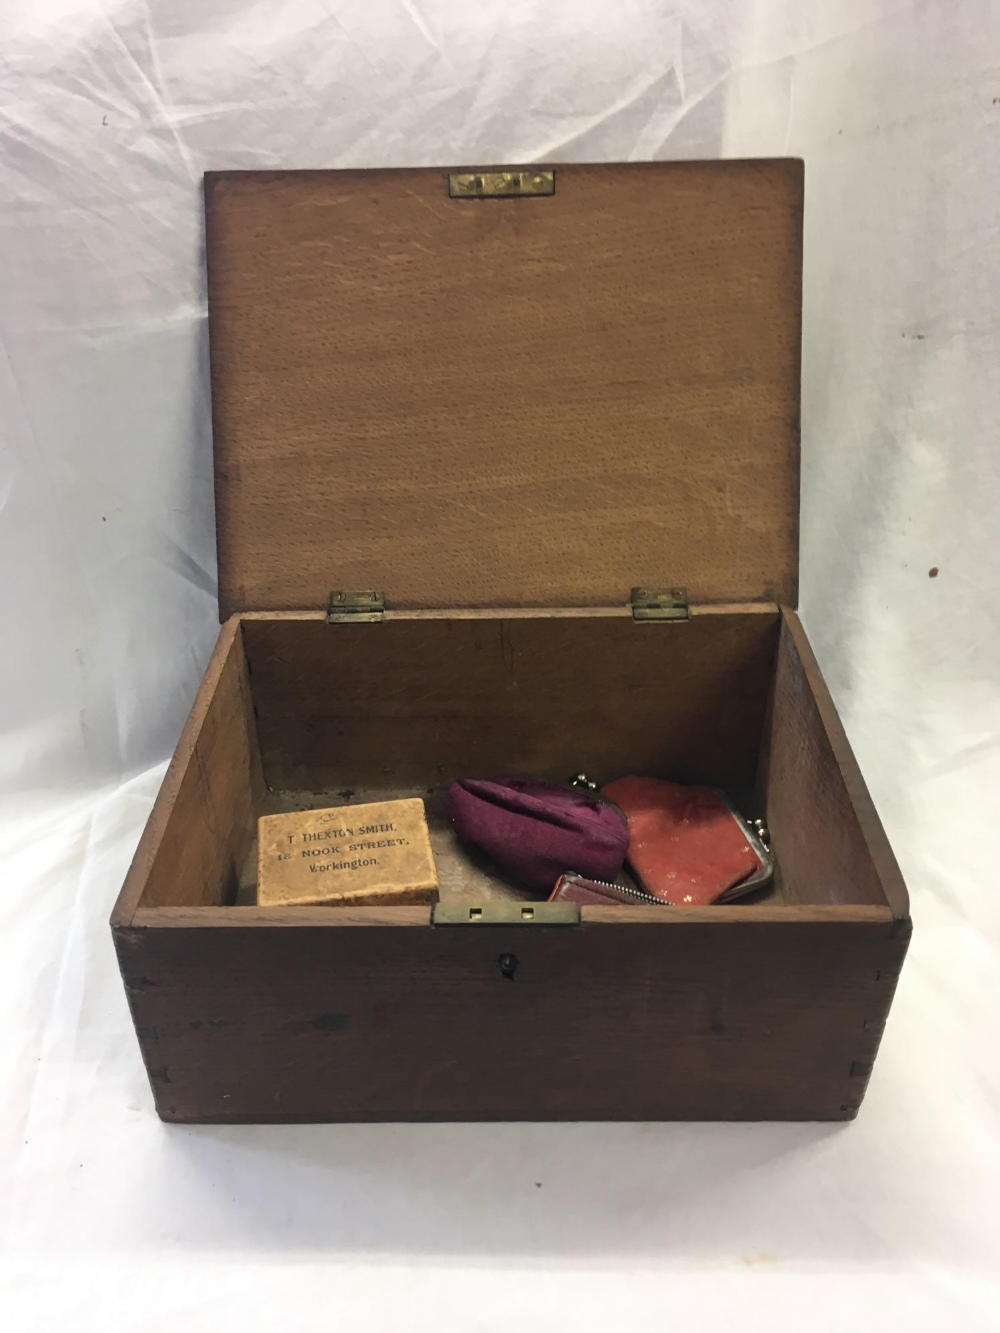 TWO WOODEN CASKETS - 1 INCL; VARIOUS EMPTY PURSES - Image 6 of 6